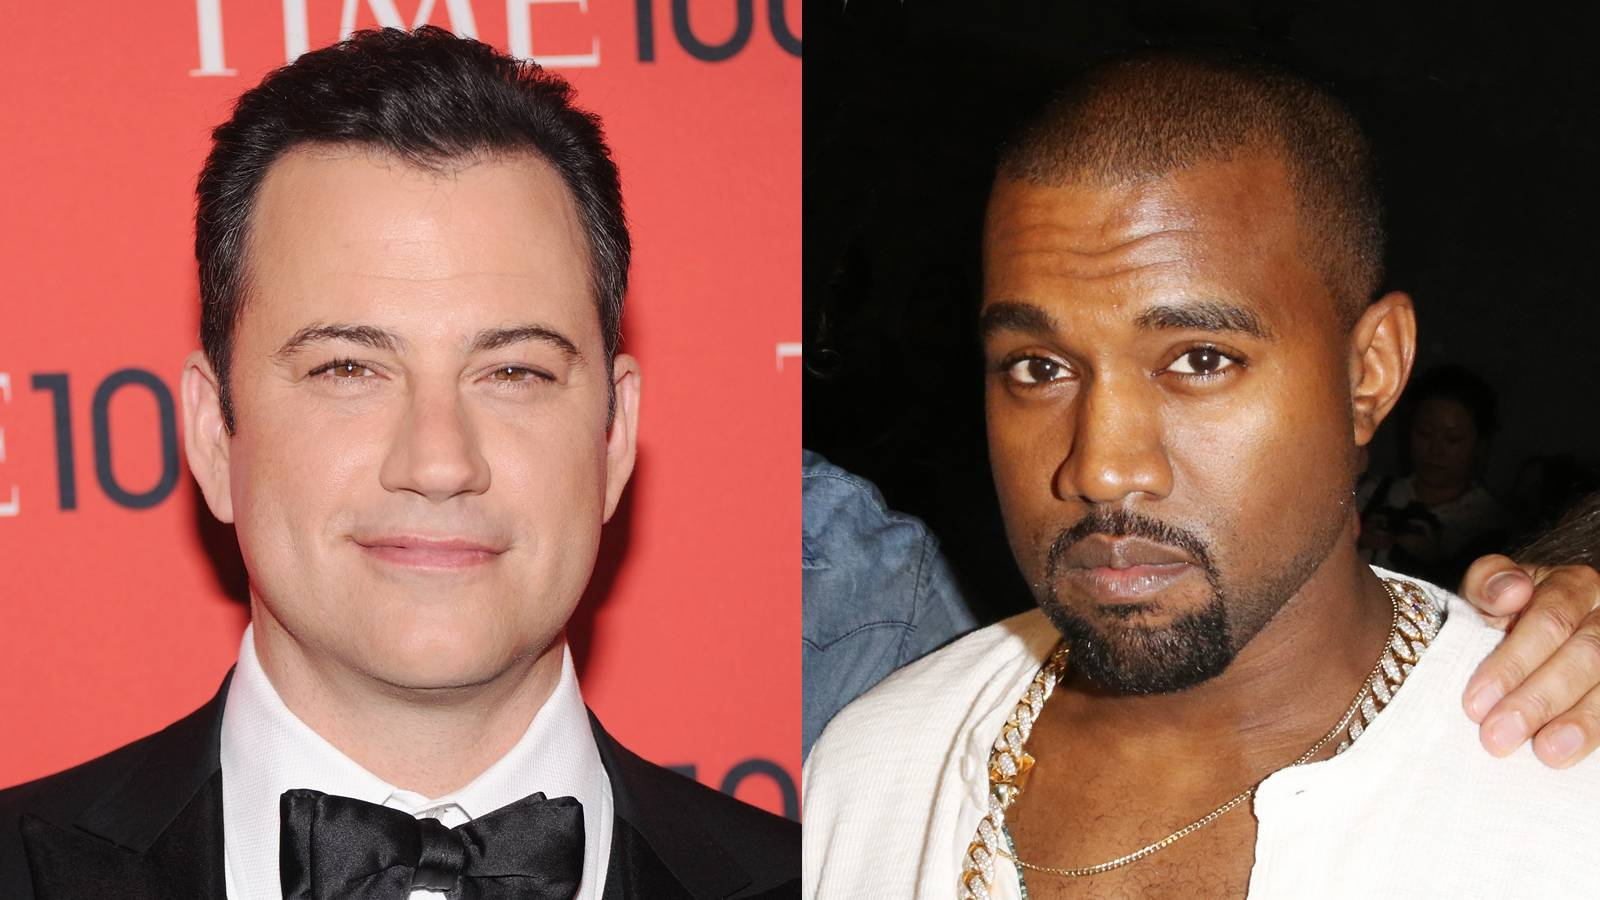 """Kanye West Deletes Tweets From JimmyKimmel Feud - It can be said that very few celebrities are more unapolgetically outspoken than rapper Kanye West. So, when he deleted his more than a dozen combative tweets aimed at late night talk show host Jimmy Kimmel, many were surprised.Tweet: """"SHOULD I DO A SPOOF ABOUT YOUR FACE OR YOU F-----G BEN AFFLECK ... #NODISREPECTTOBENAFFLECK #ALLDISRESPECTTOJIMMYKILLEL!!!!""""(Photos from left: Jamie McCarthy/Getty Images, Chelsea Lauren/Getty Images for Mercedes-Benz Fashion Week Spring 2014)"""